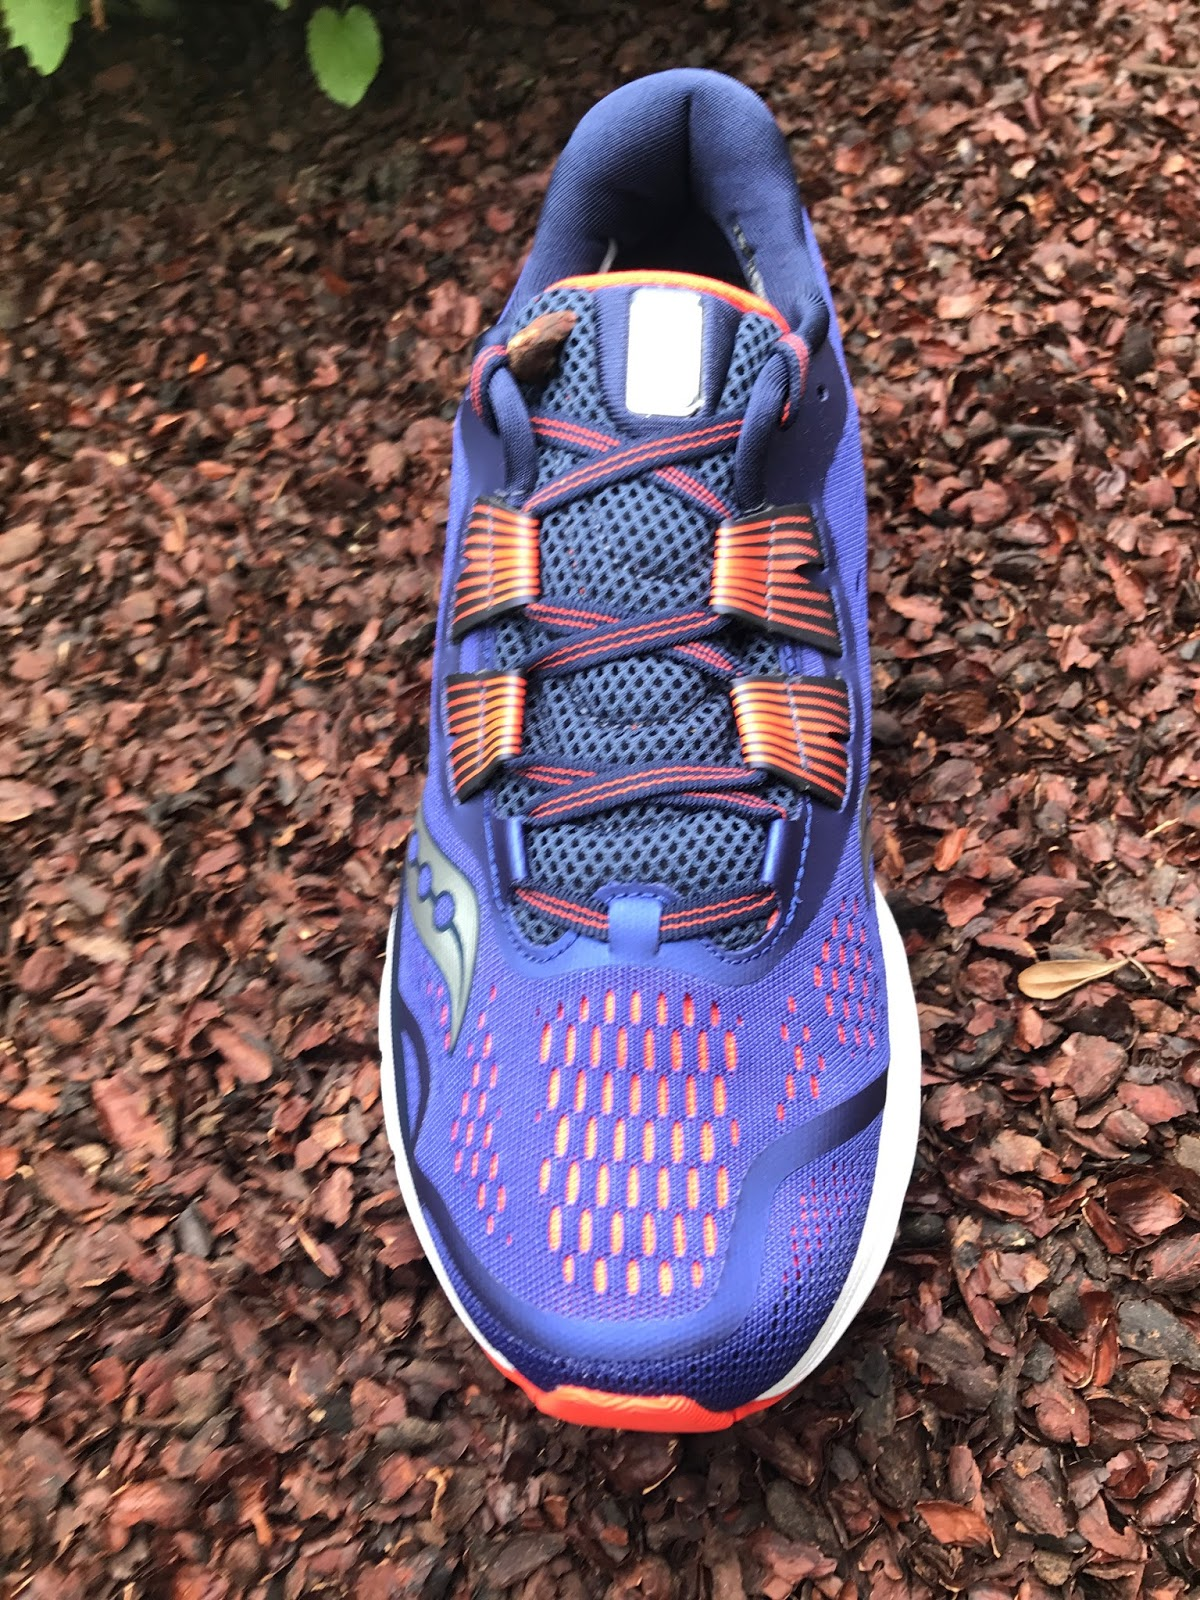 e4544aa01551 The widely spaced and wide green loops and lacing relieve all top of the foot  pressure